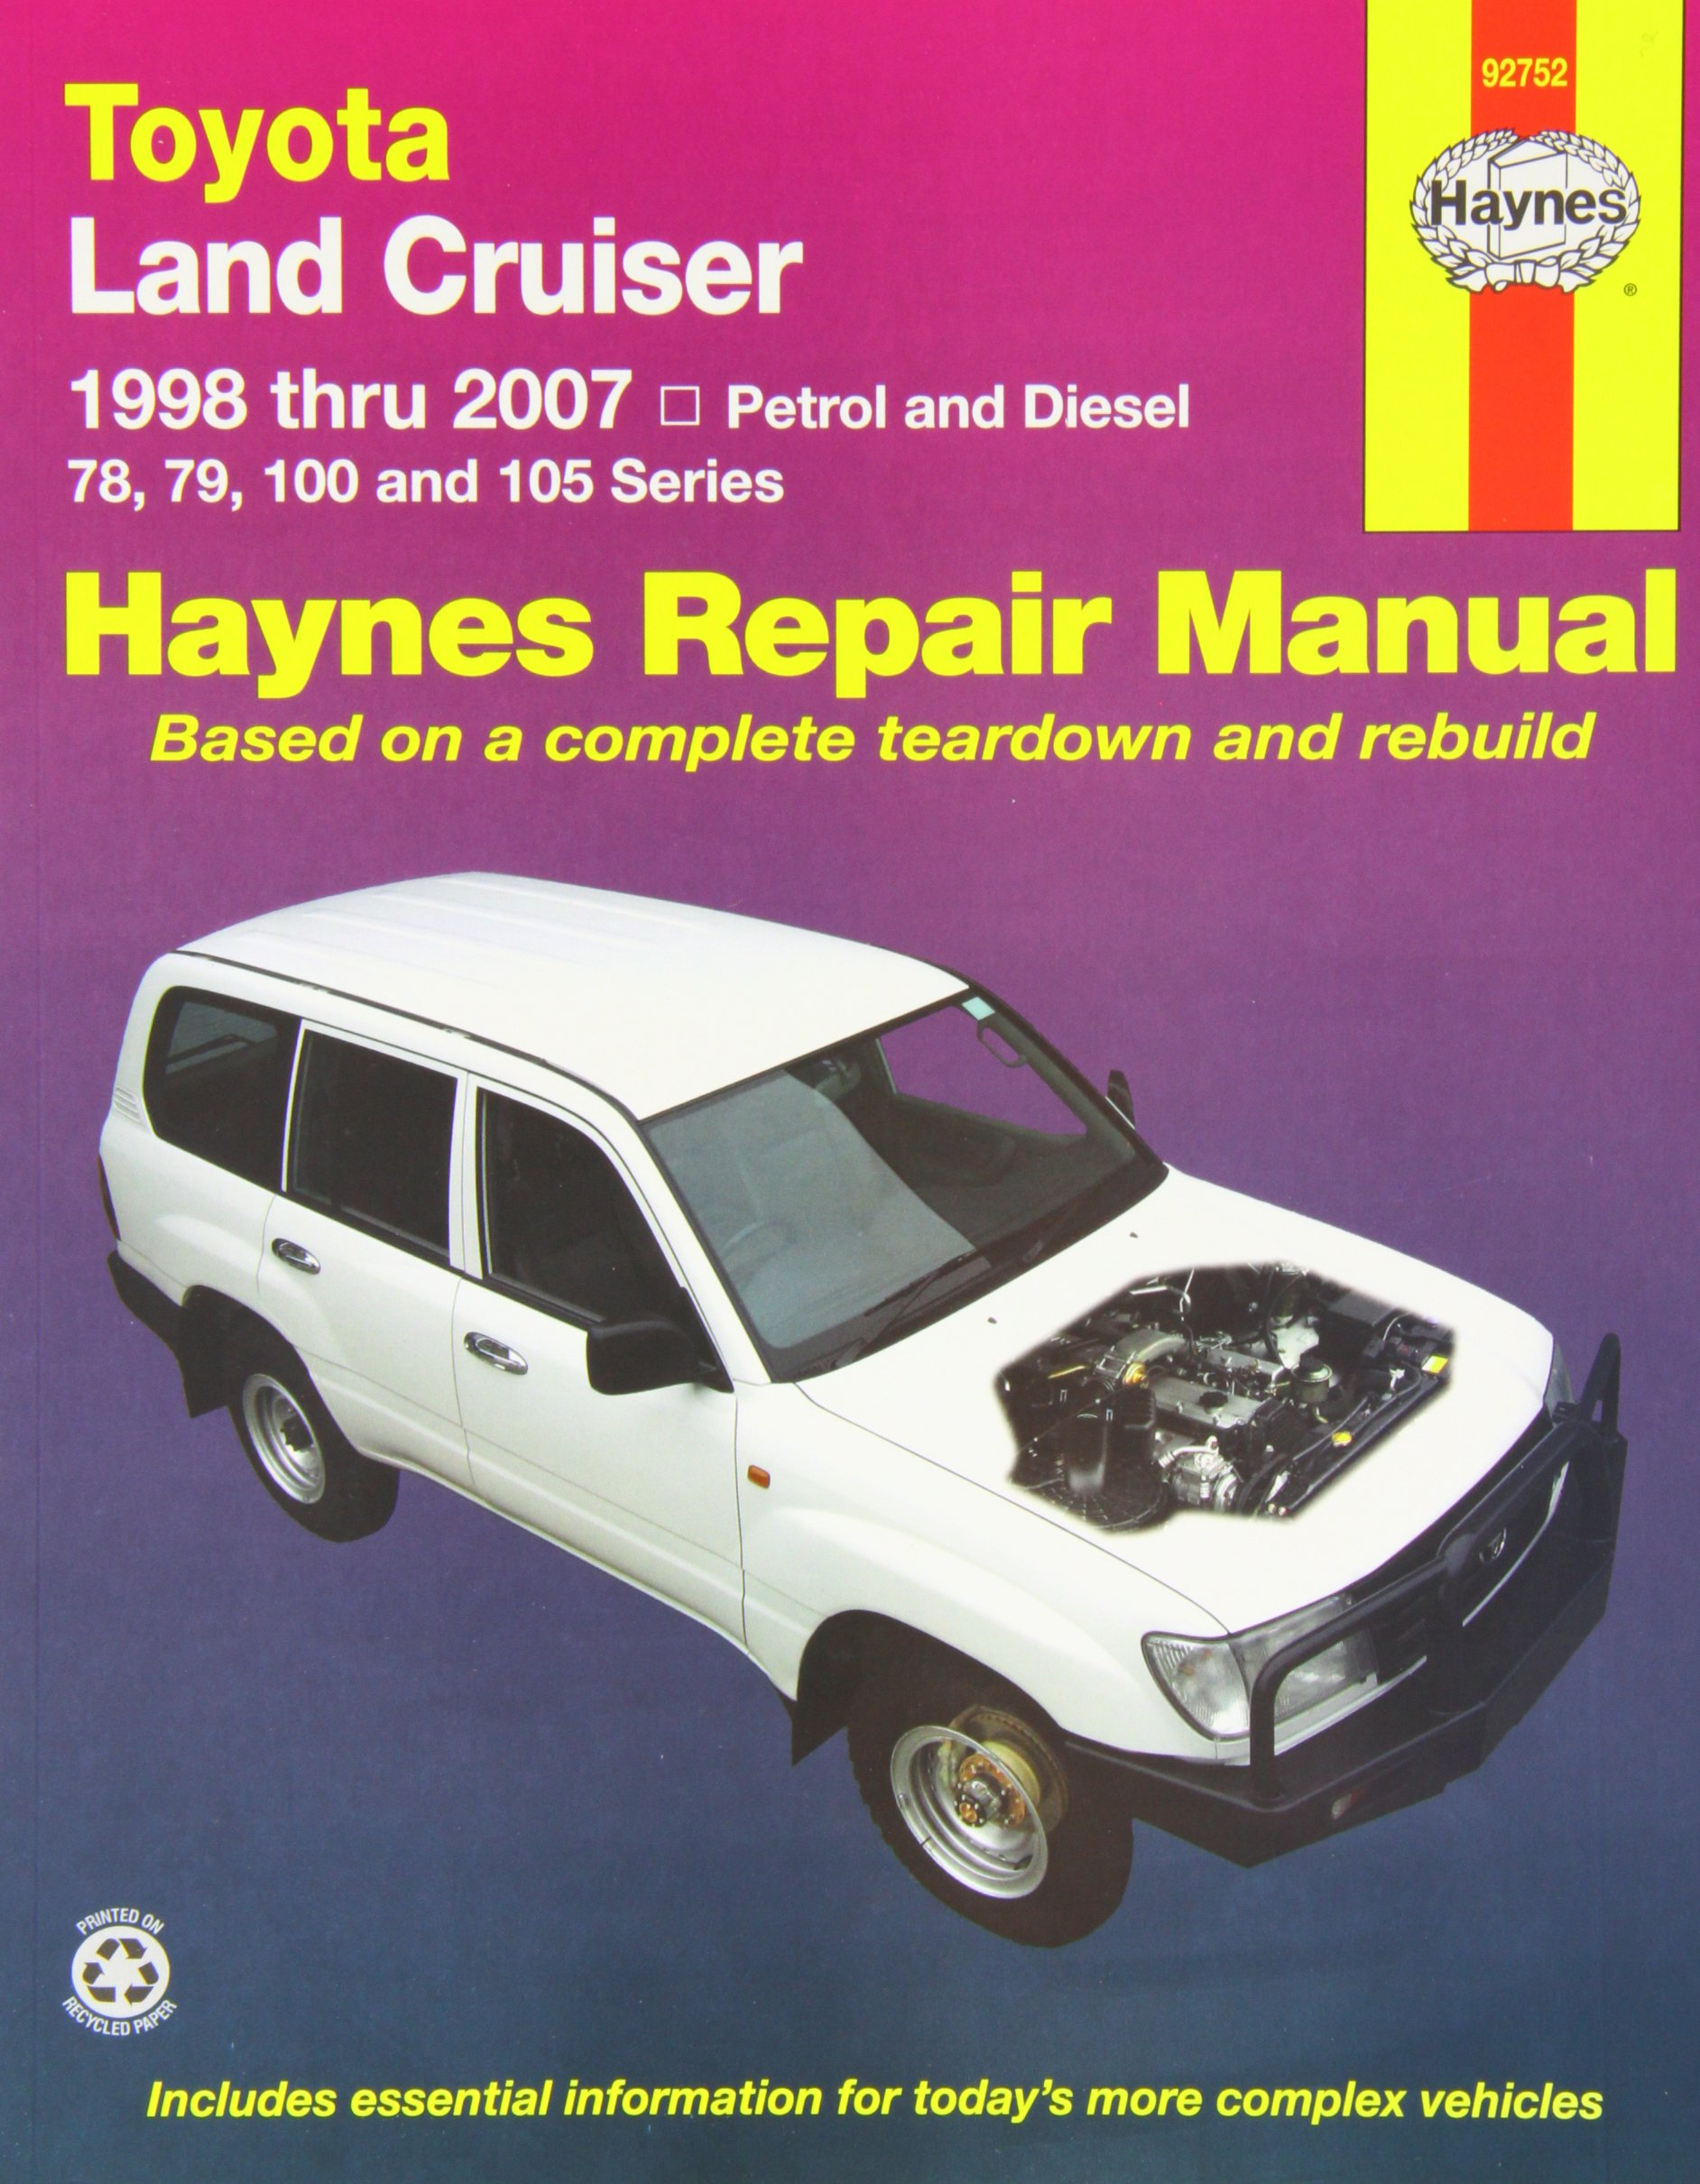 Toyota Landcruiser Repair Manual: 2005-2007.: Haynes Publishing:  9781563928826: Amazon.com: Books